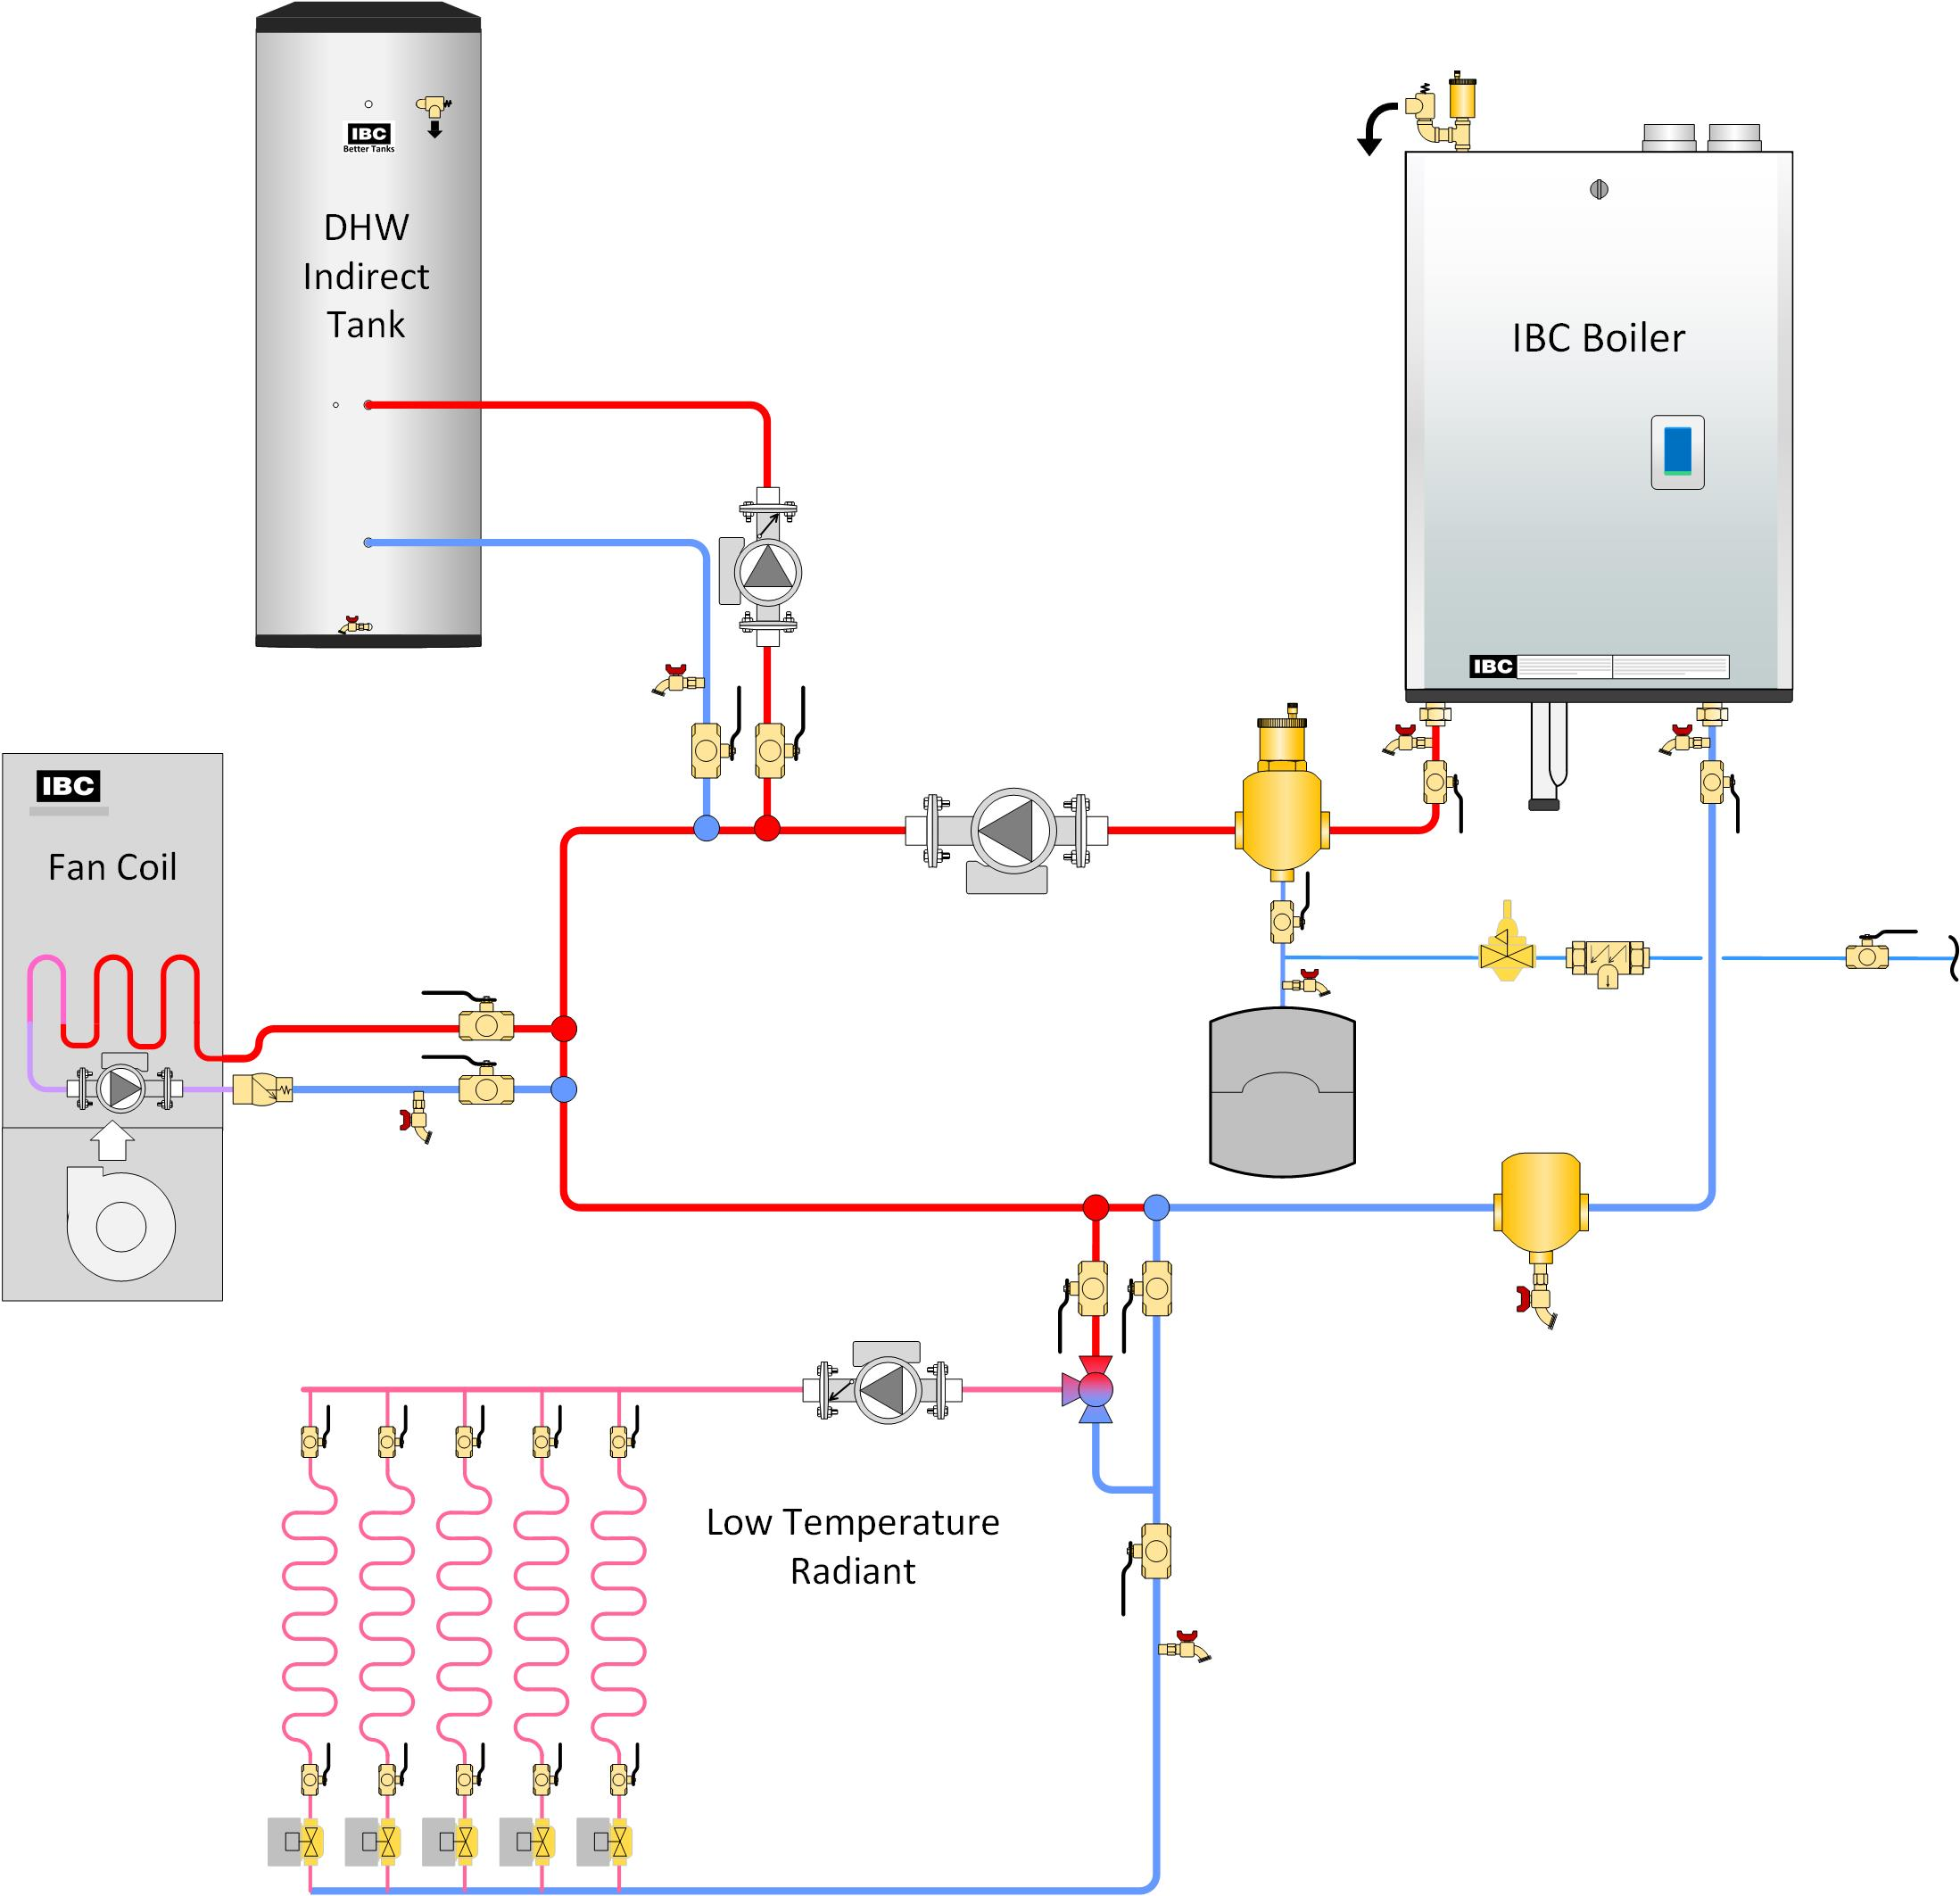 Primary/Secondary piping concept with simultaneous setpoint calls